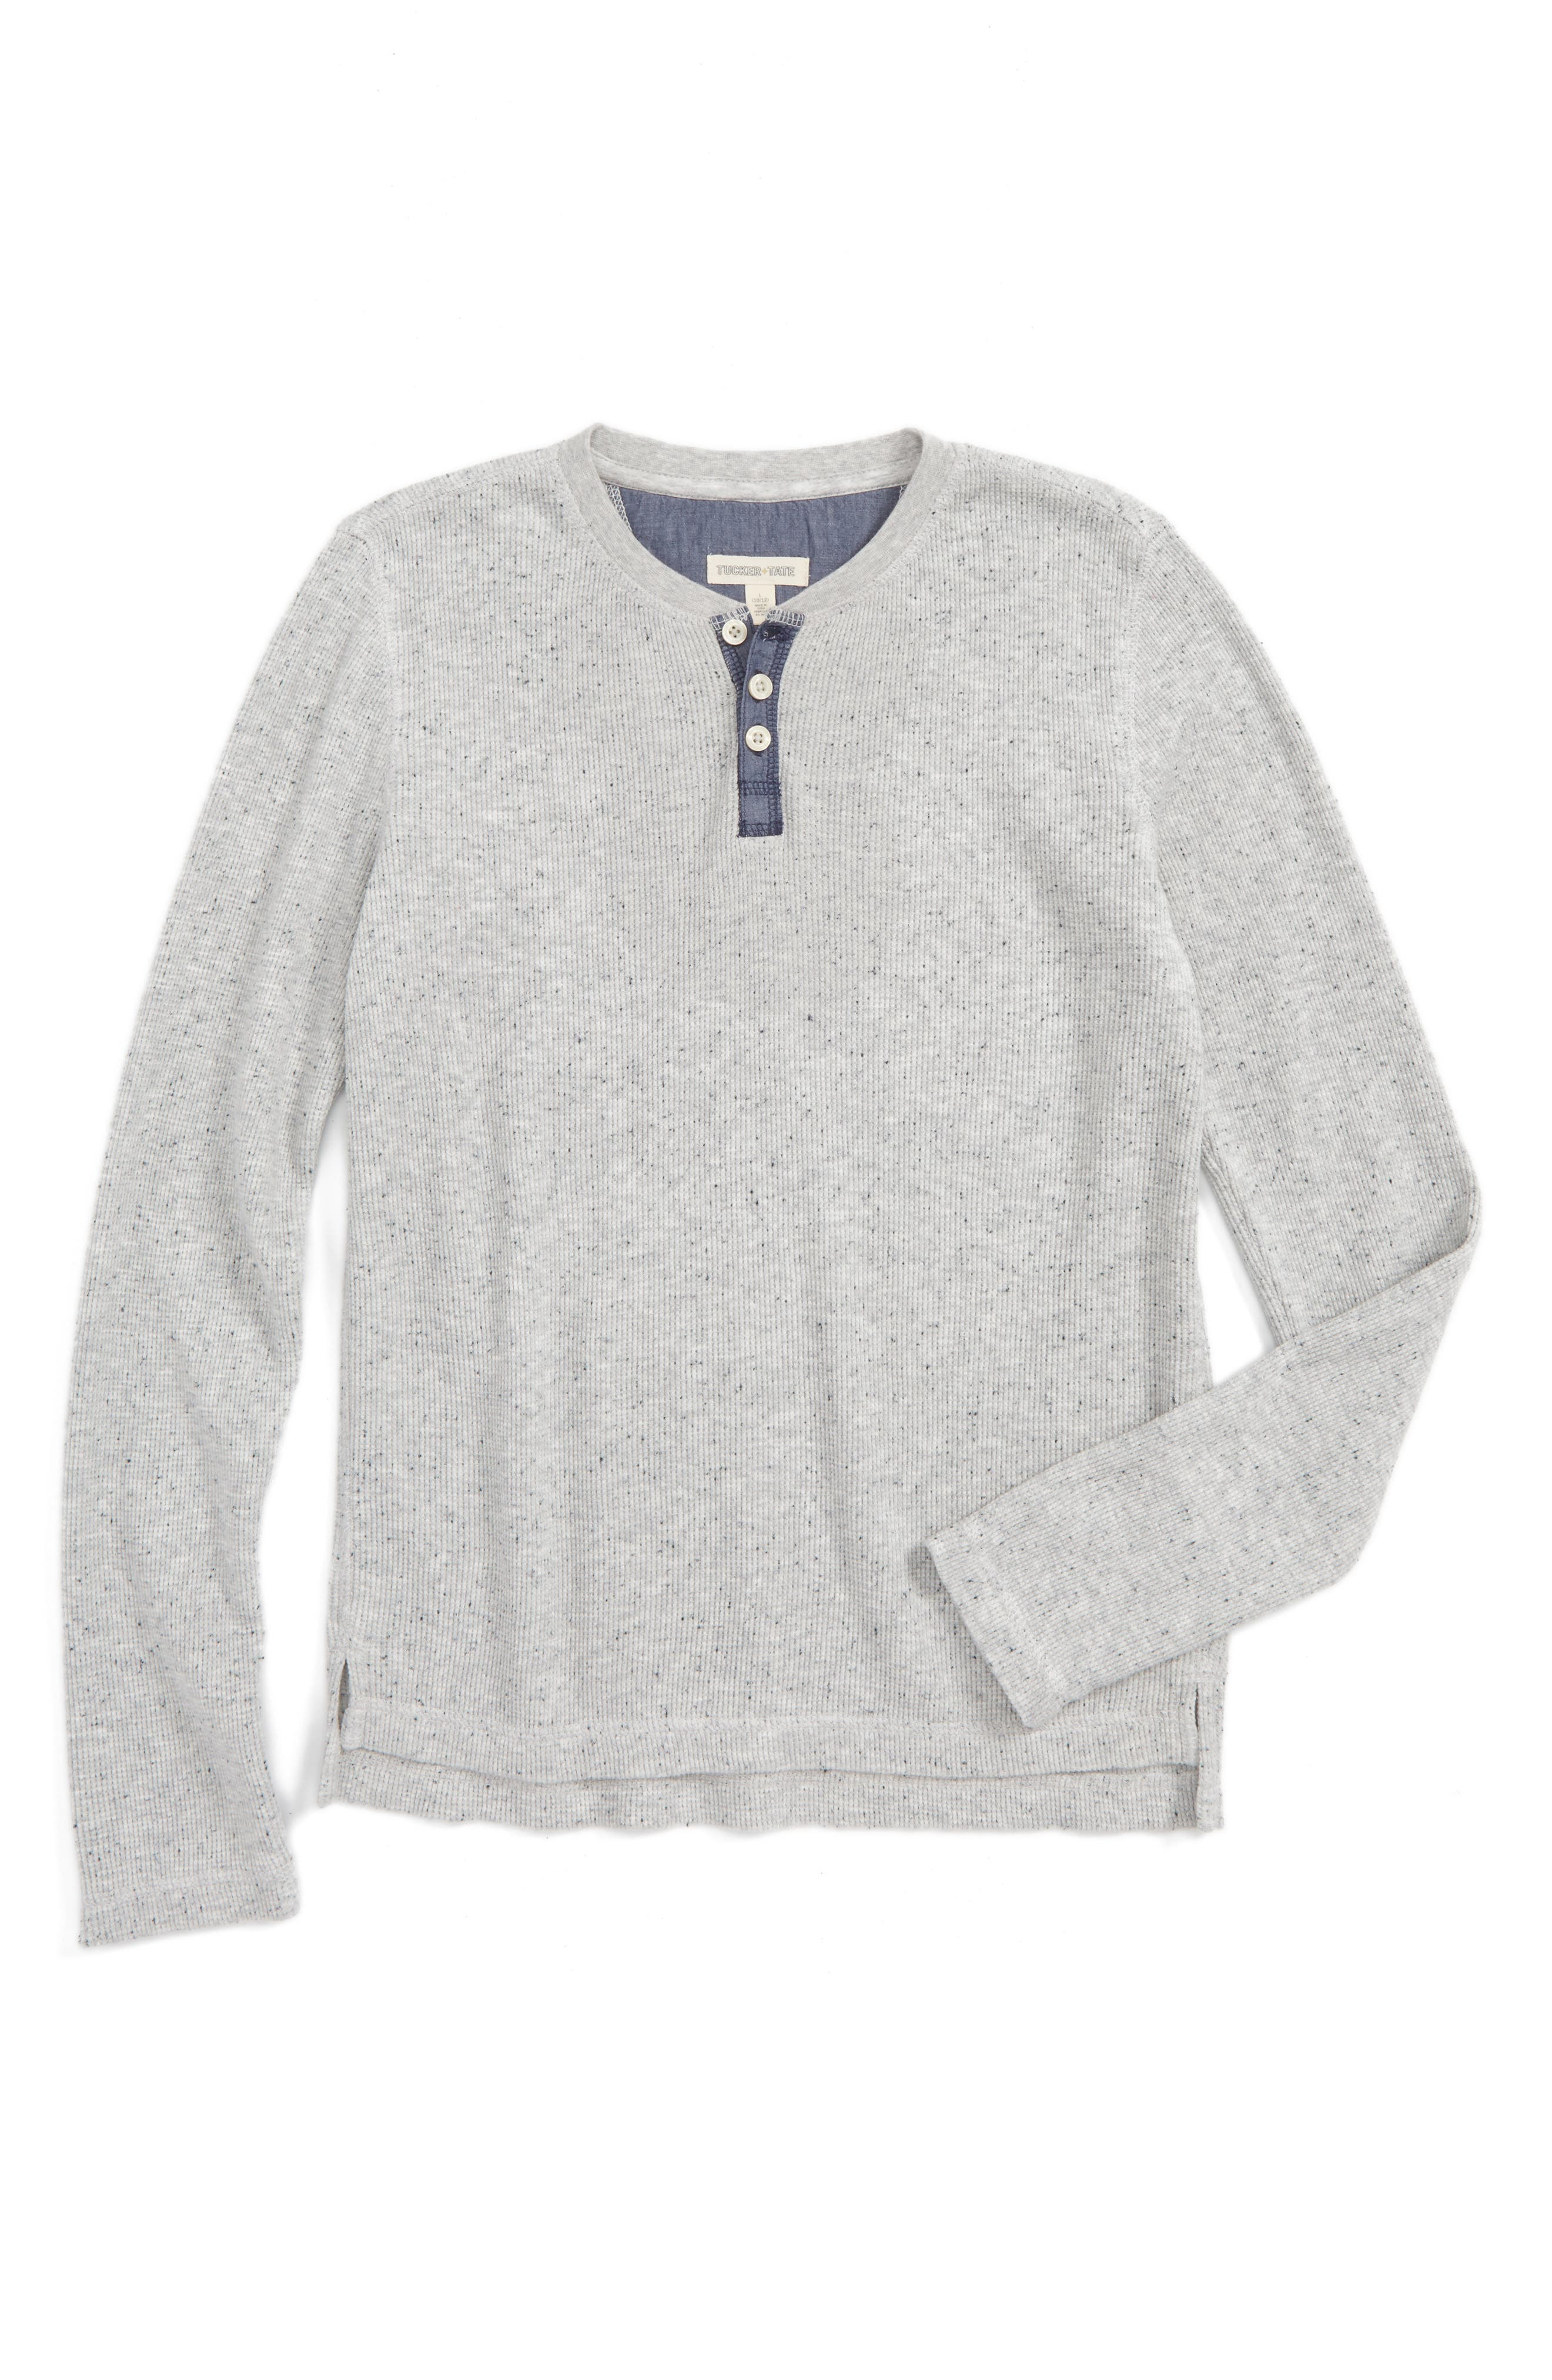 TUCKER + TATE Thermal Henley